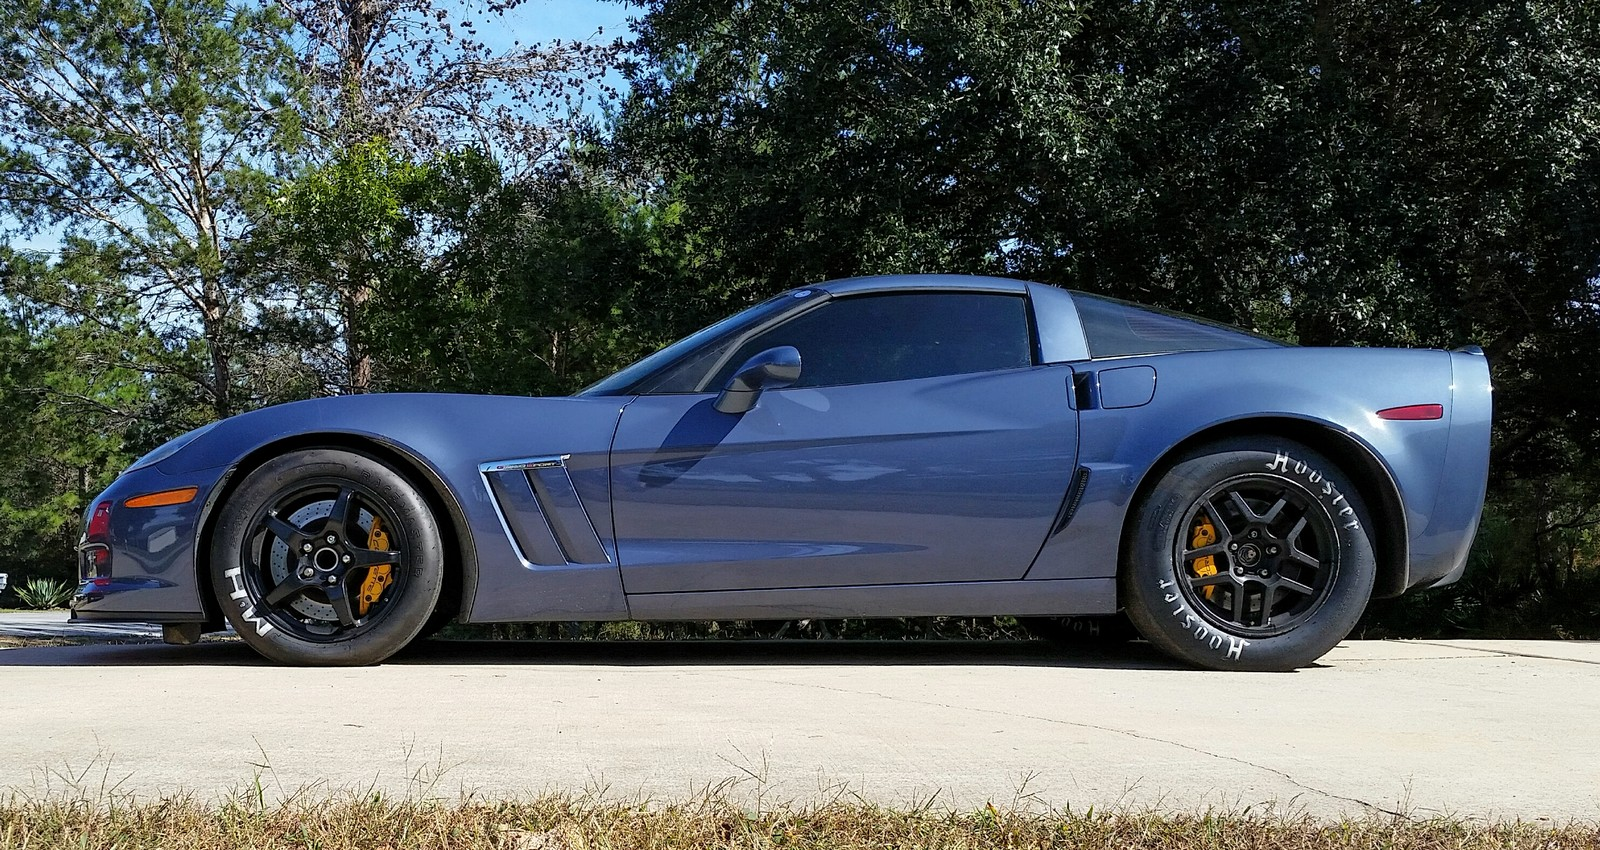 2012 Sonic Blue  Chevrolet Corvette Grand Sport All Motor 6.2L picture, mods, upgrades